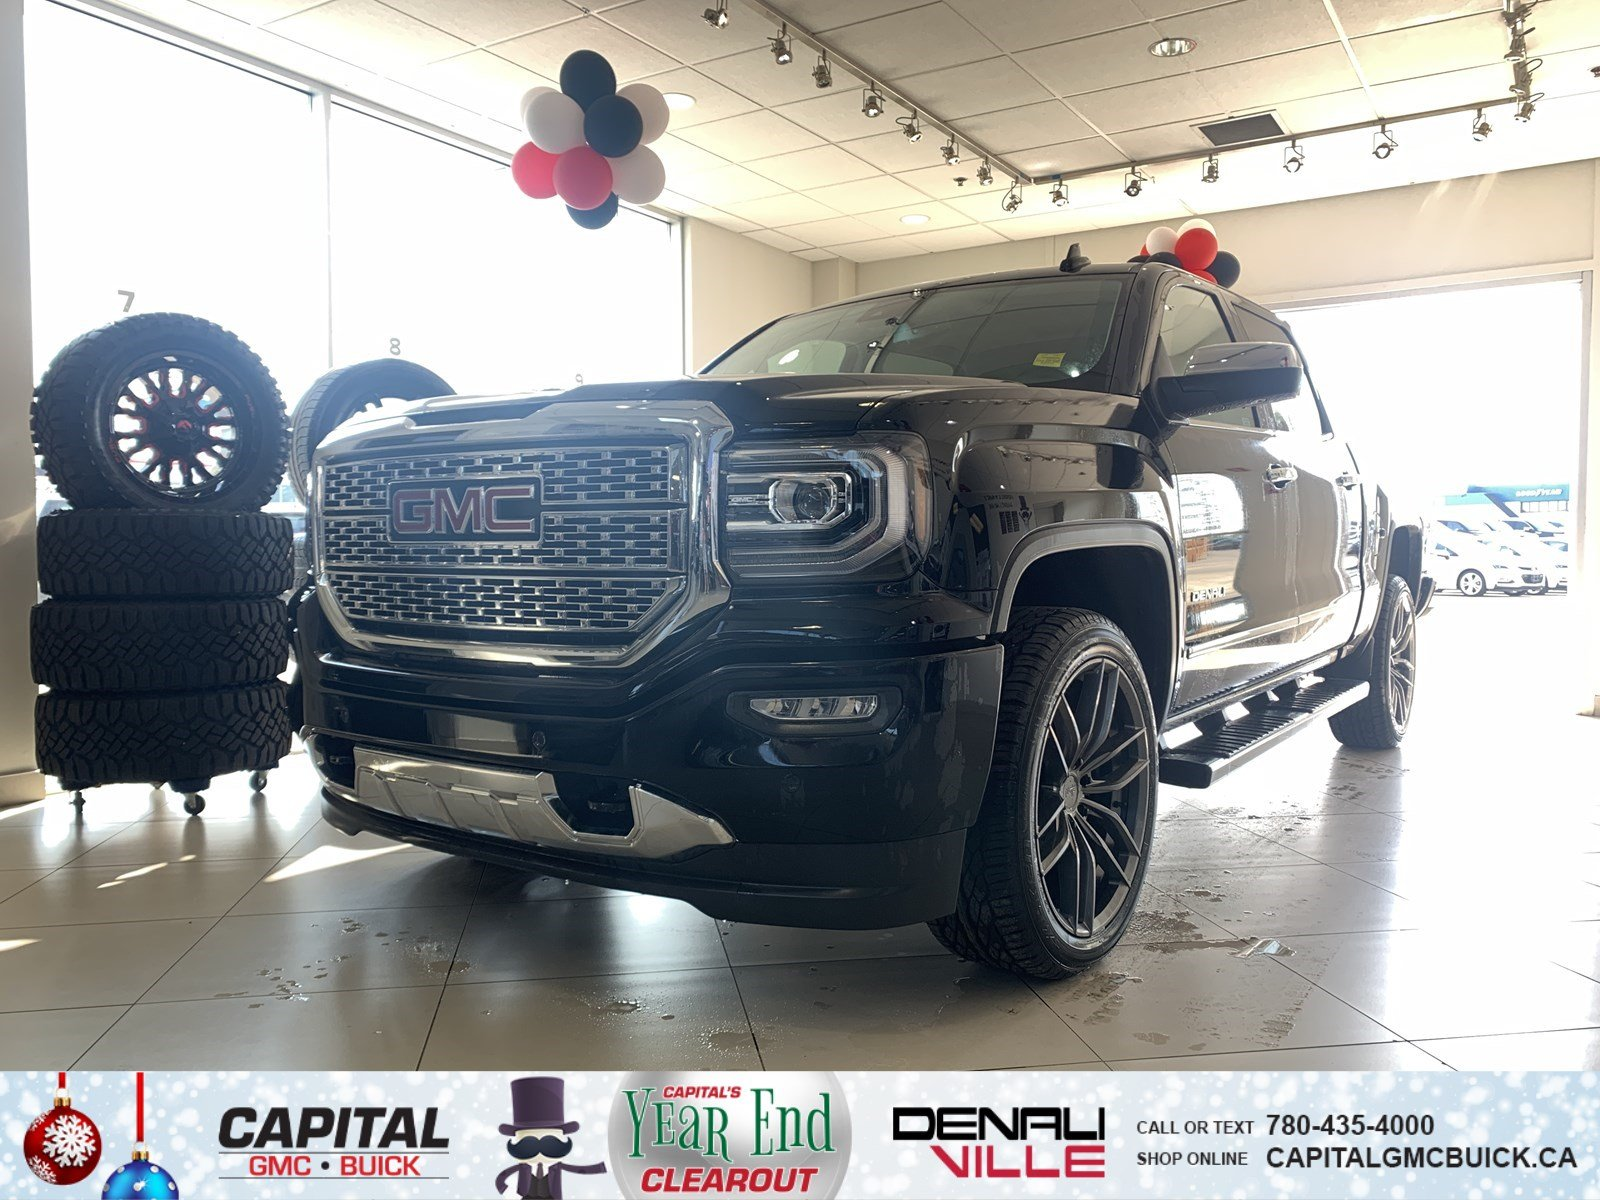 Pre-Owned 2018 GMC Sierra 1500 BRAND NEW | DENALI | HEATED & COOLED SEATS | HEATED STEERING WHEEL | SUNROOF